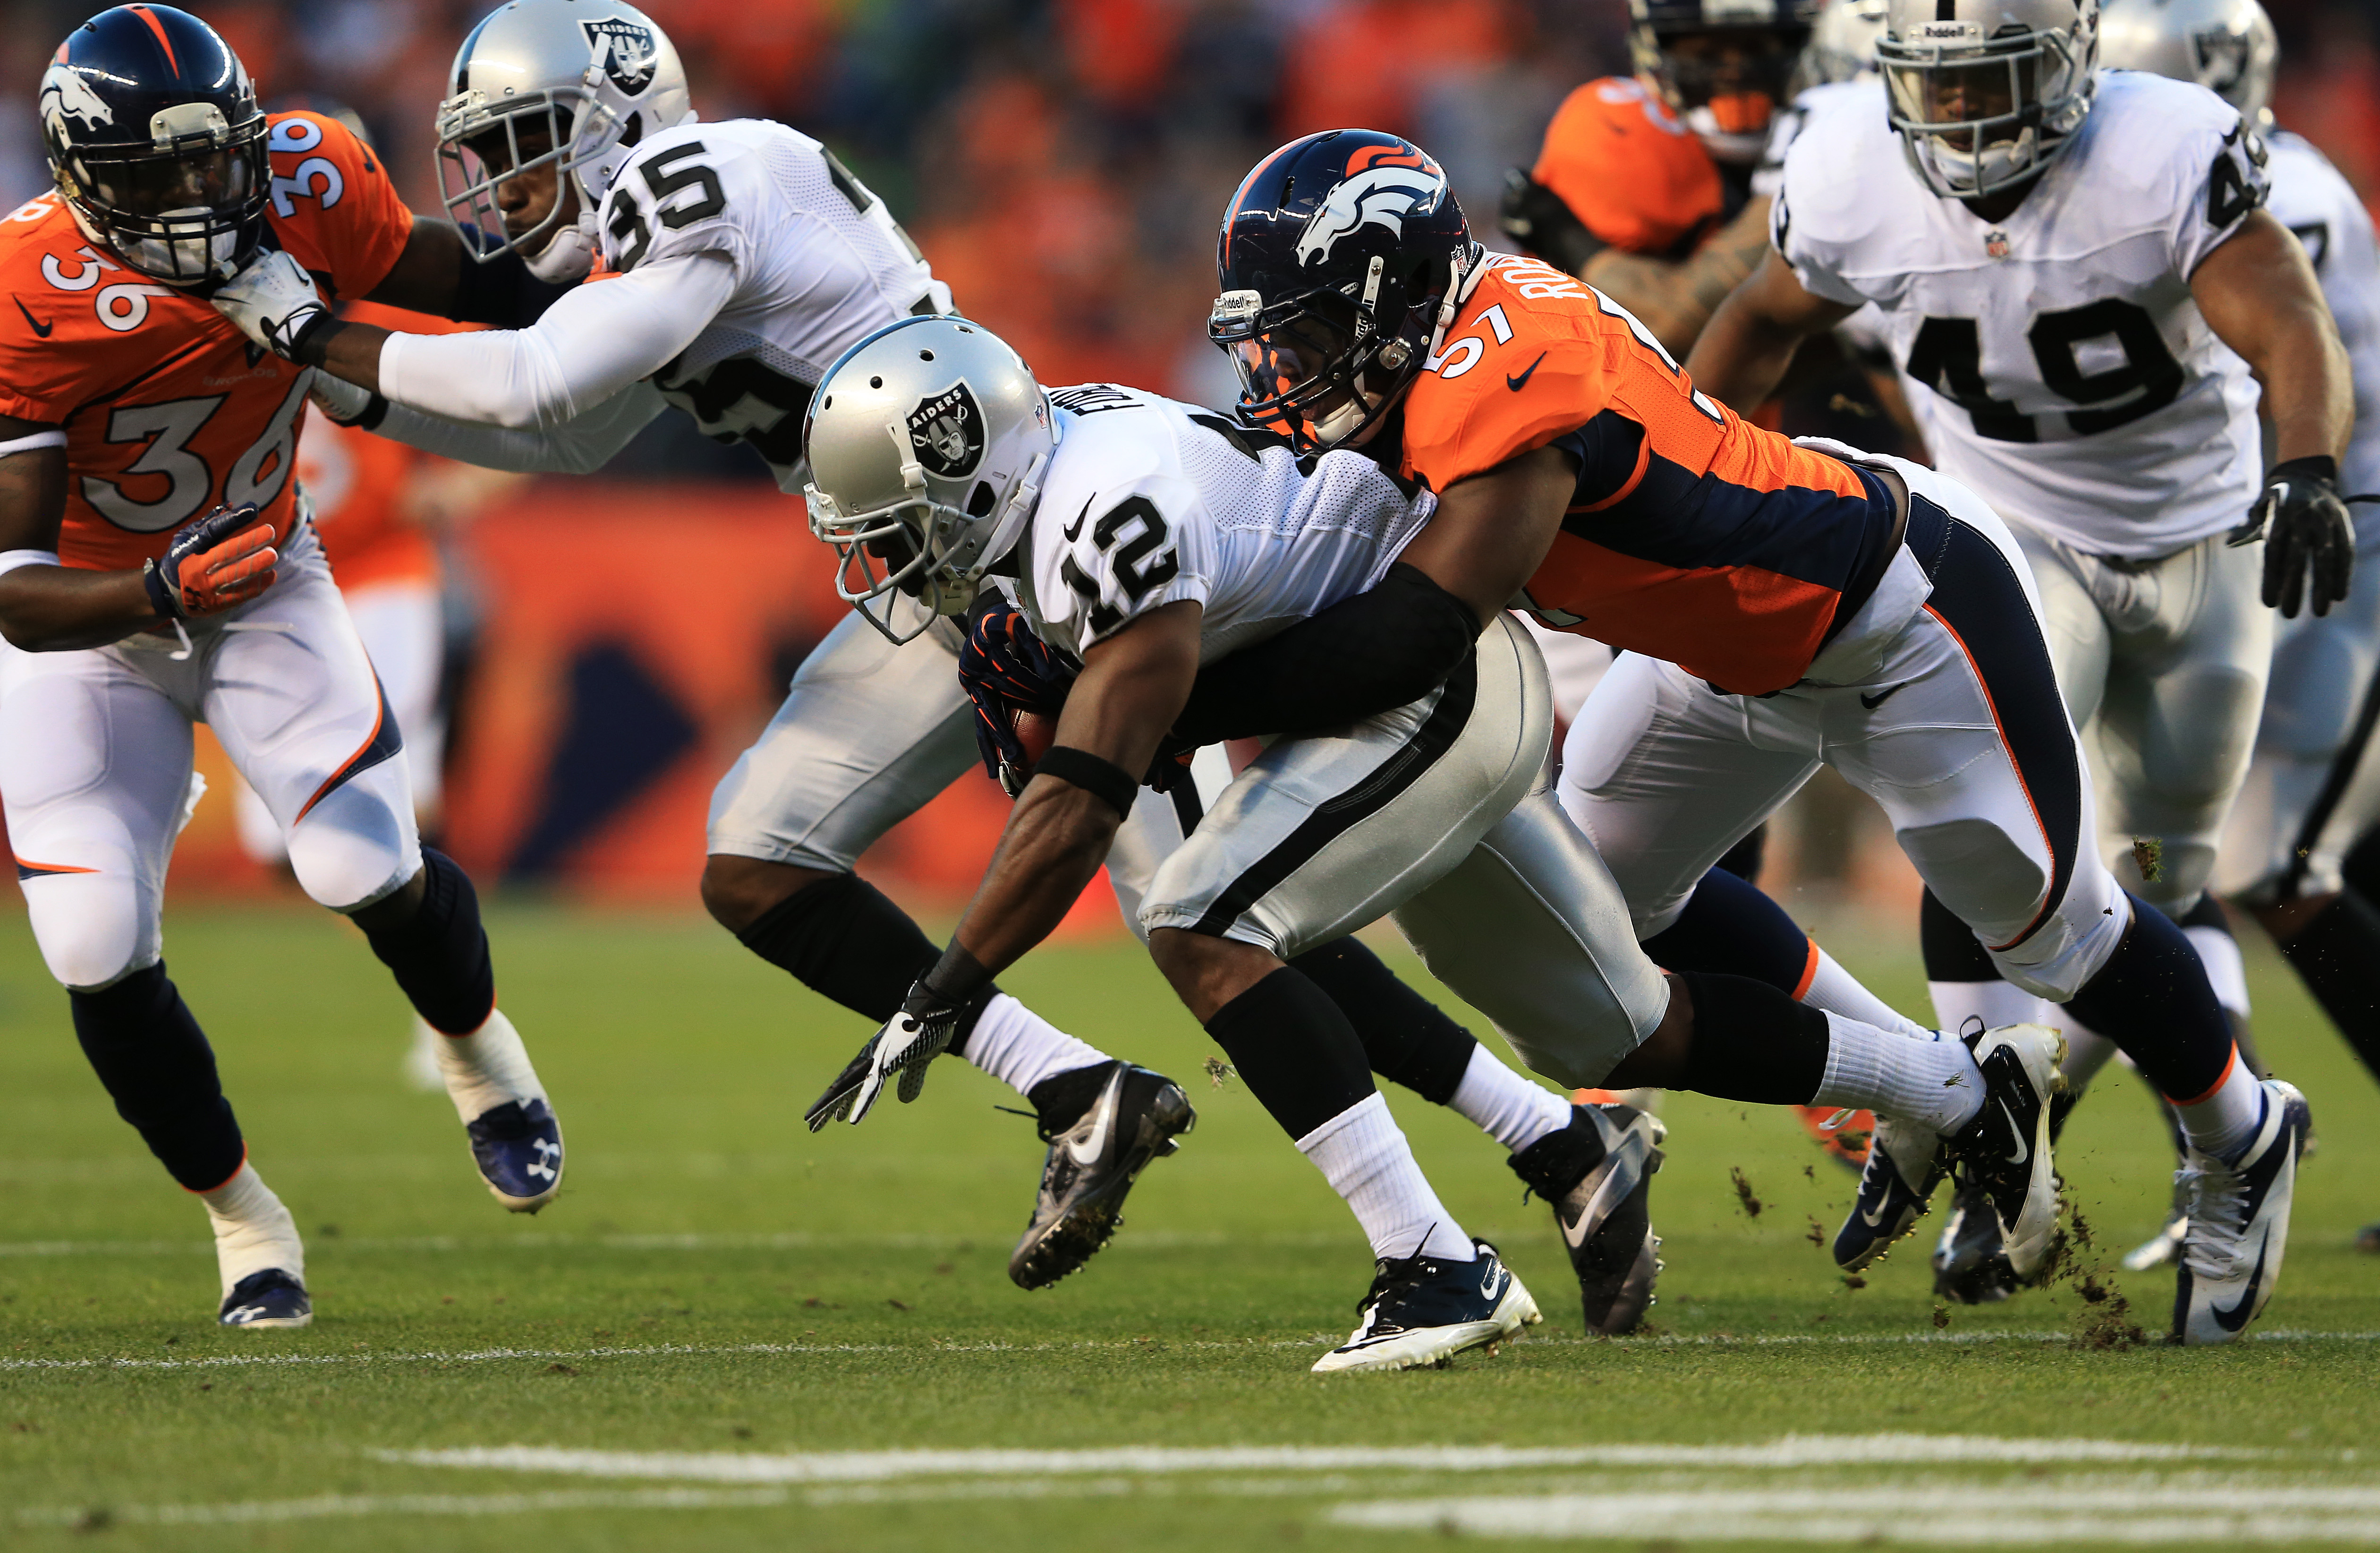 DENVER, CO - SEPTEMBER 23:   Jacoby Ford #12 of the Oakland Raiders is tackled by Adrian Robinson #57 of the Denver Broncos as he returns the opening kickoff at Sports Authority Field at Mile High on September 23, 2013 in Denver, Colorado.  (Photo by Doug Pensinger/Getty Images)